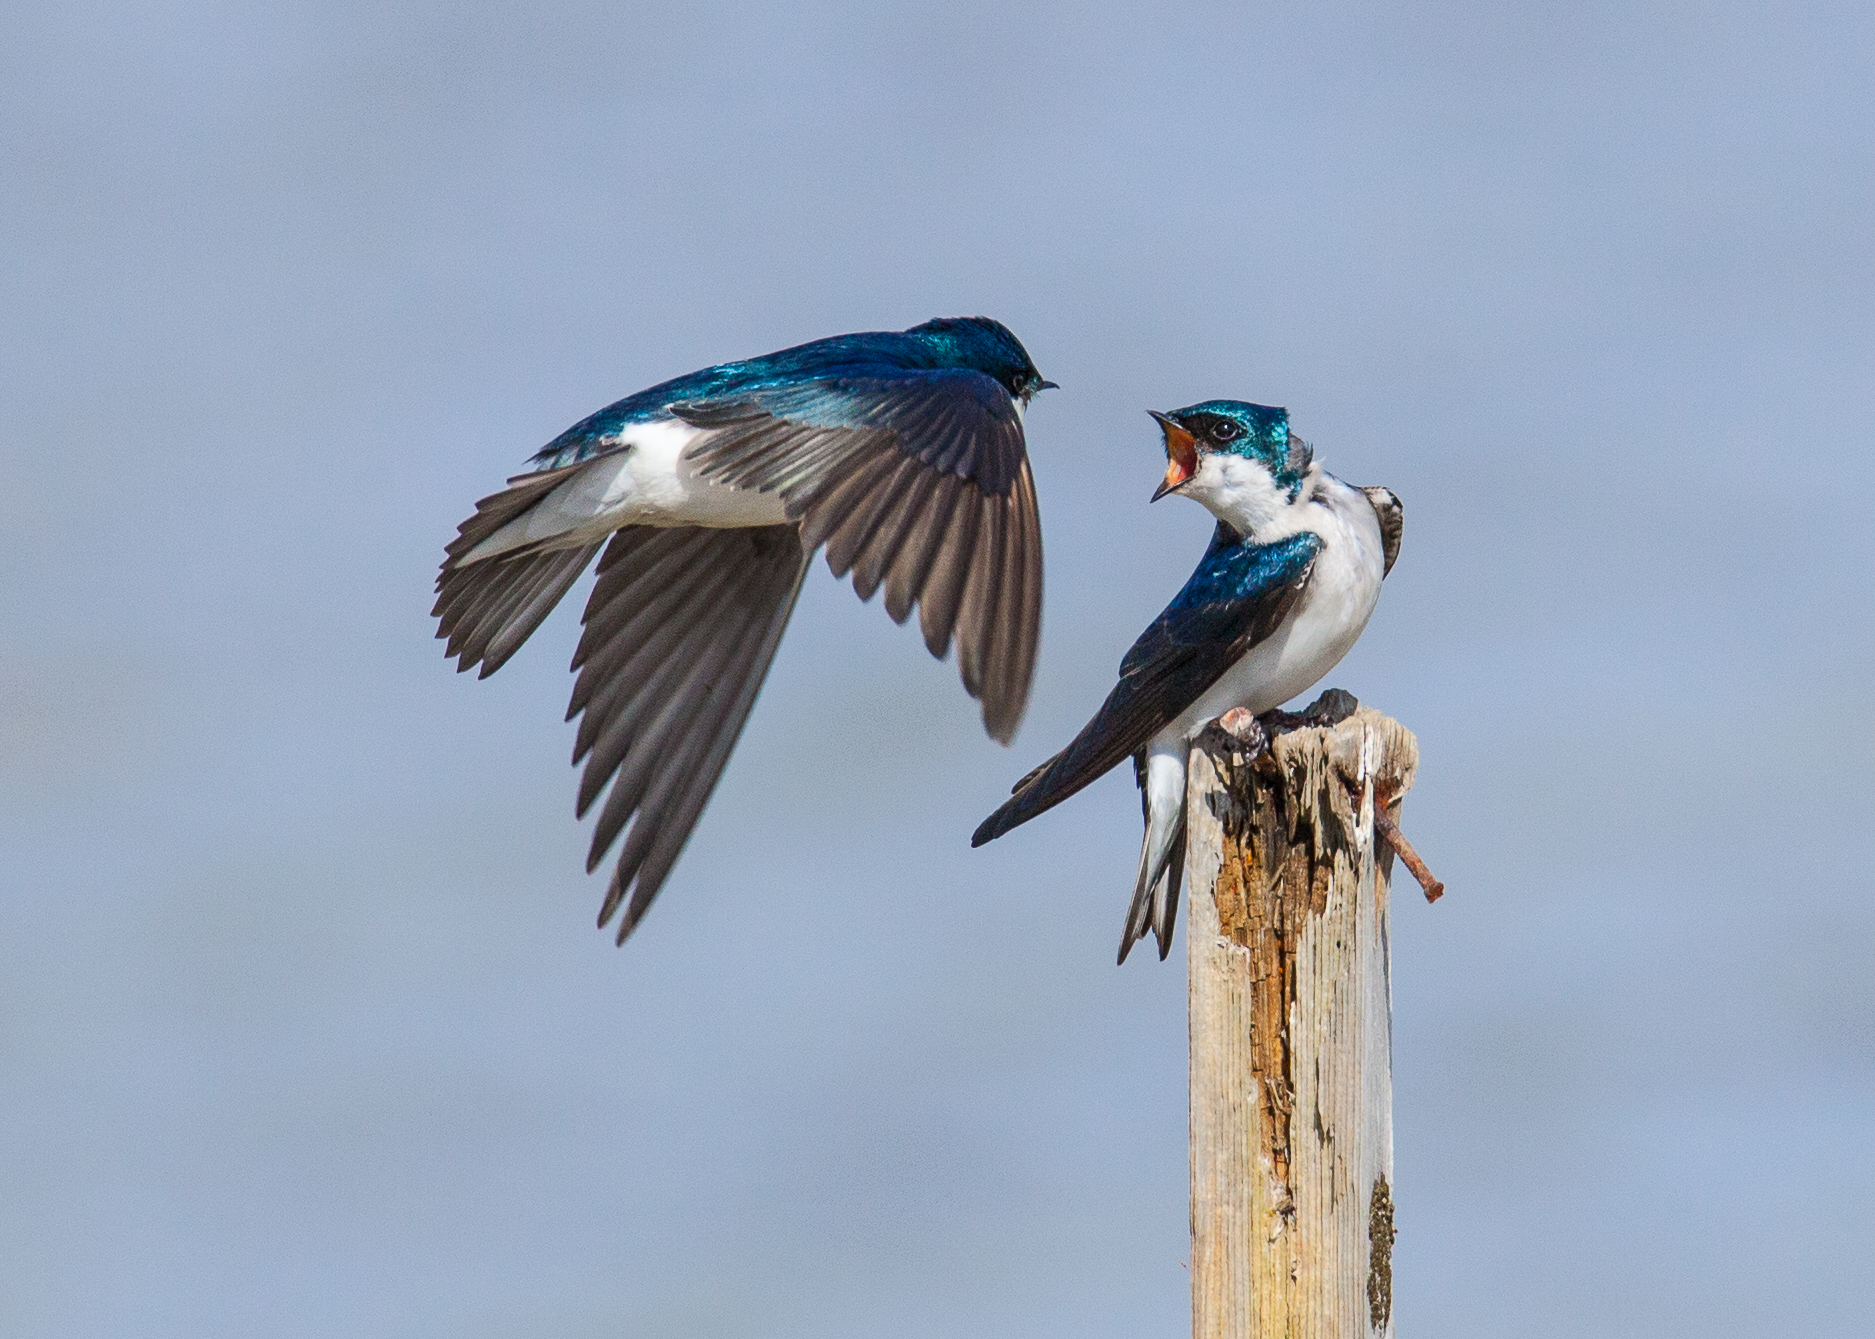 The swallow on the right seems to be missing a lot of feathers.